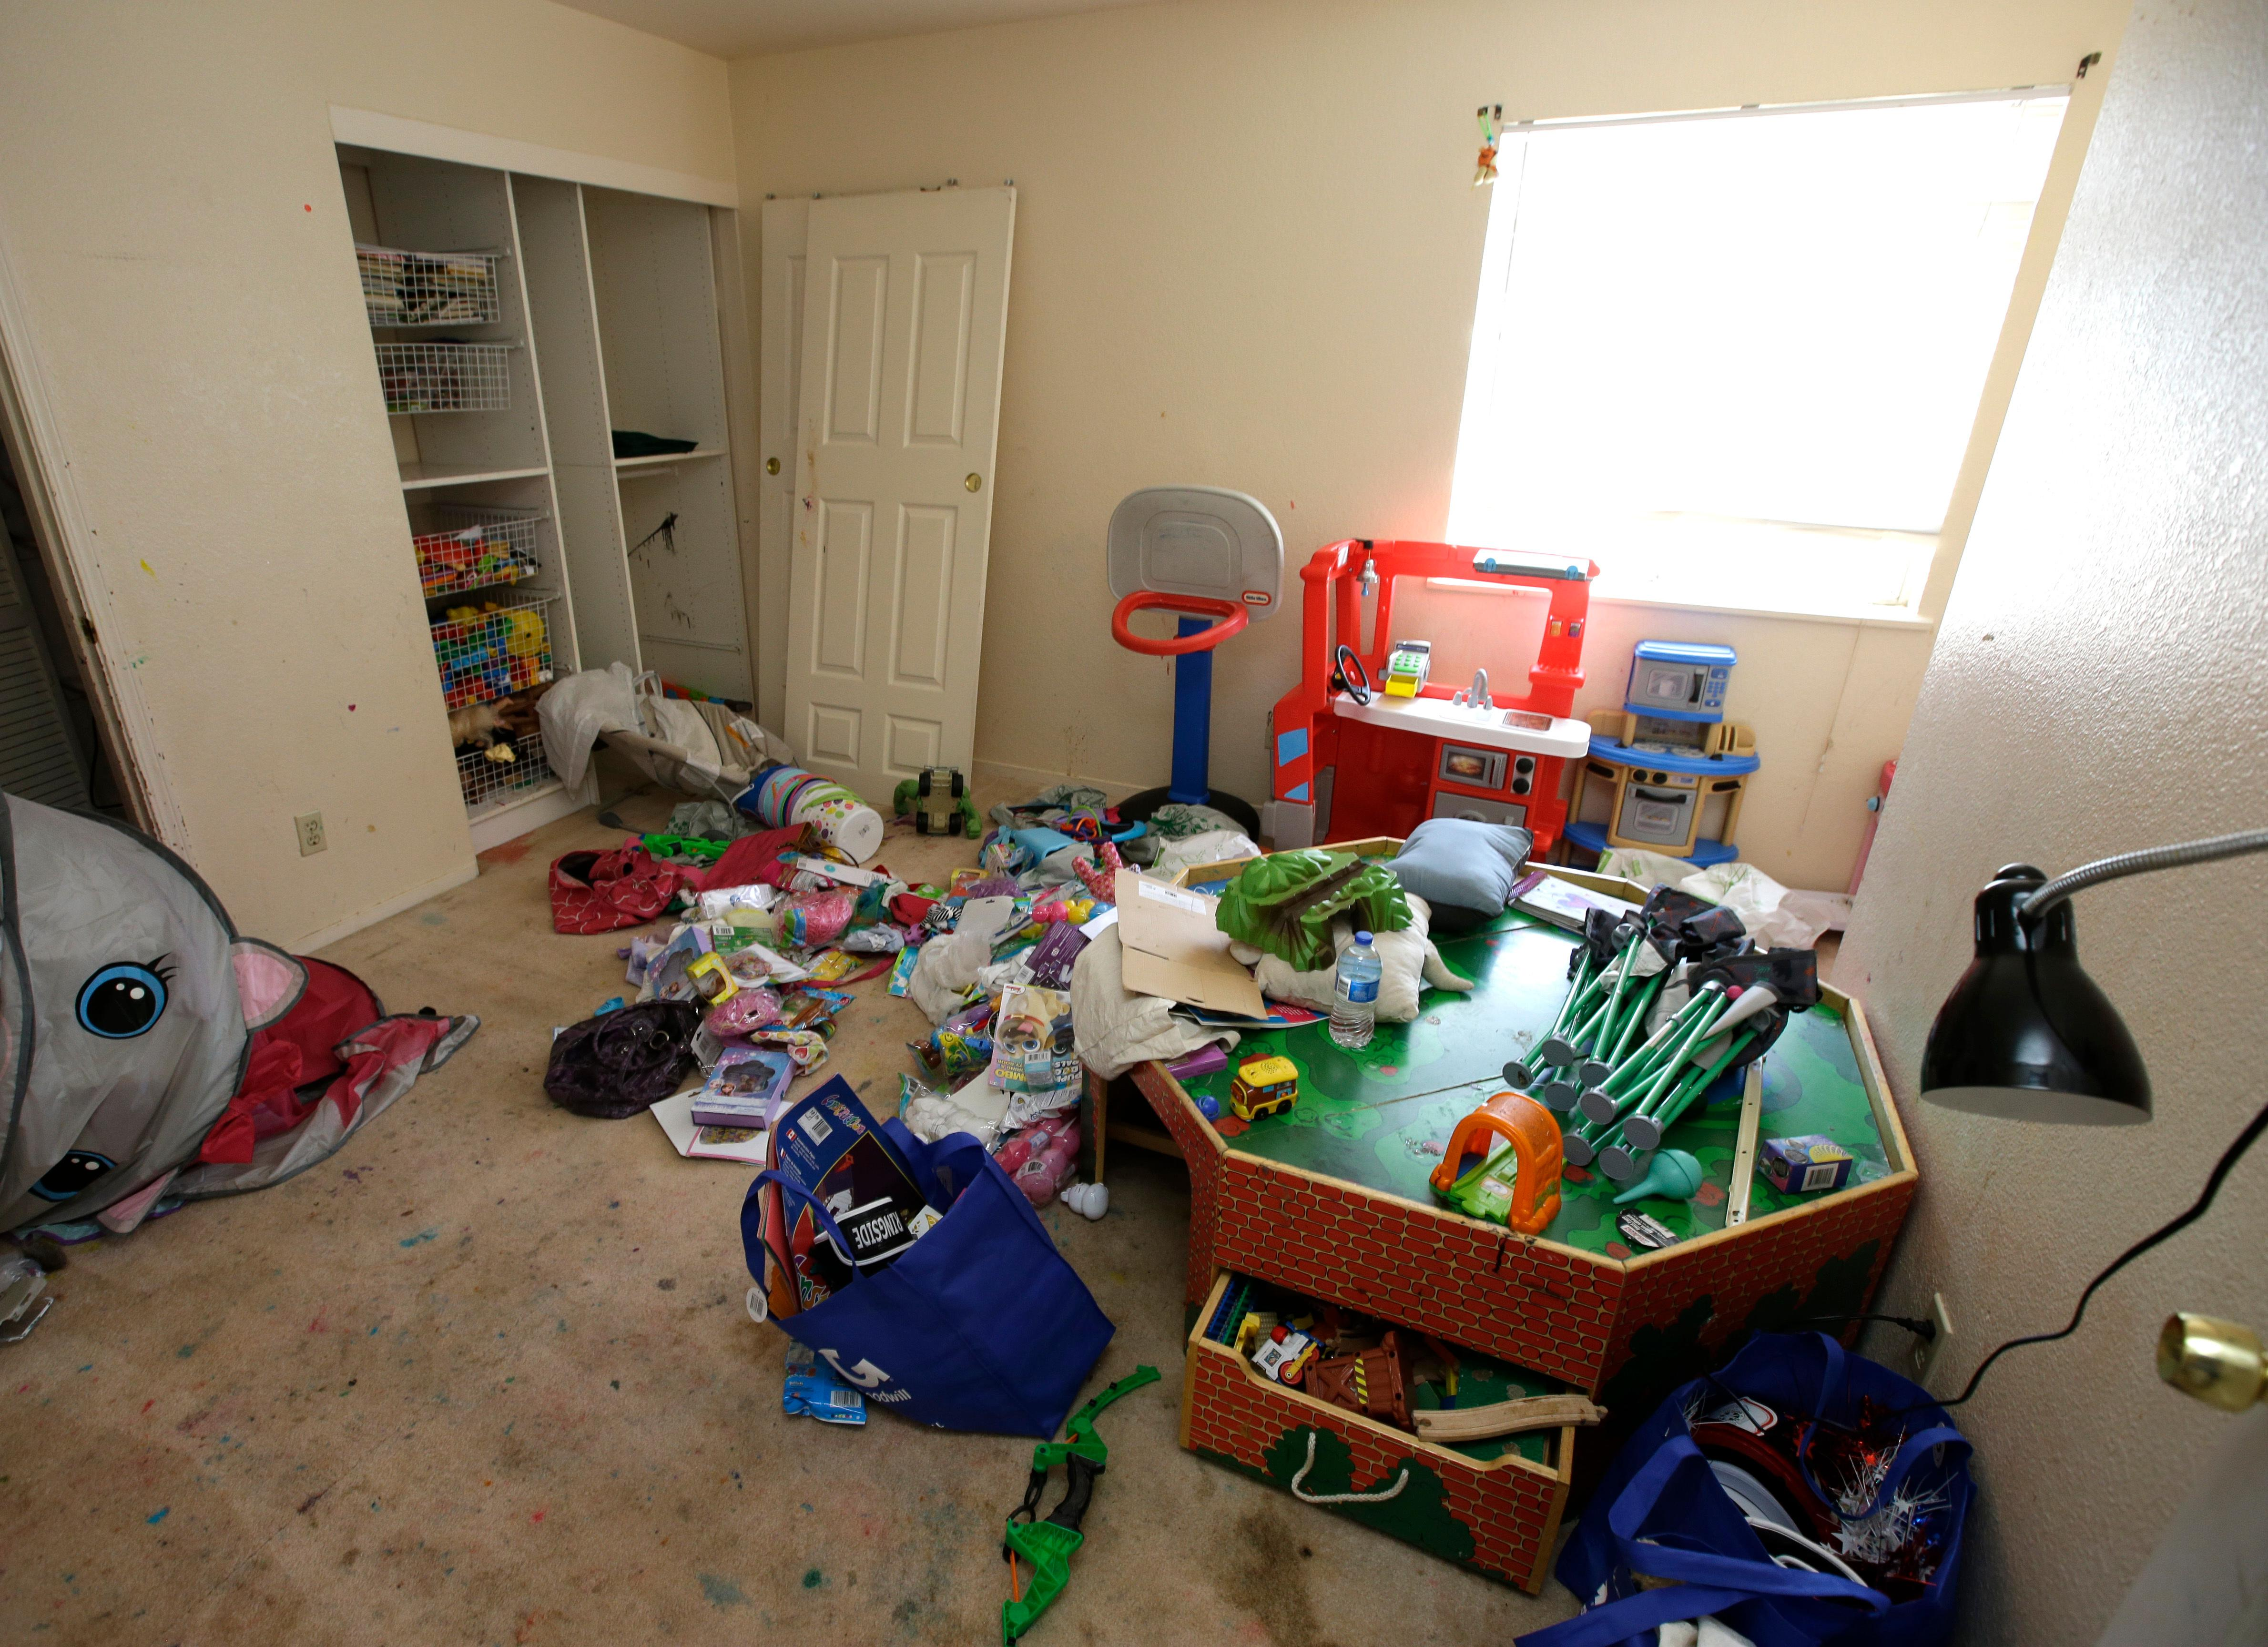 Toys and other items are strewn around one of the rooms of a home, Monday, May 14, 2018, where authorities removed 10 children and arrested their parents in Fairfield, Calif. Authorities removed the children living at the home on March 31 and placed them in protective custody after one of them ran away. Ina Rogers faces charges of child neglect and her husband, Jonathan Allen, has been charged with torture and child abuse. Ina Rogers denied the children were mistreated. (AP Photo/Rich Pedroncelli)